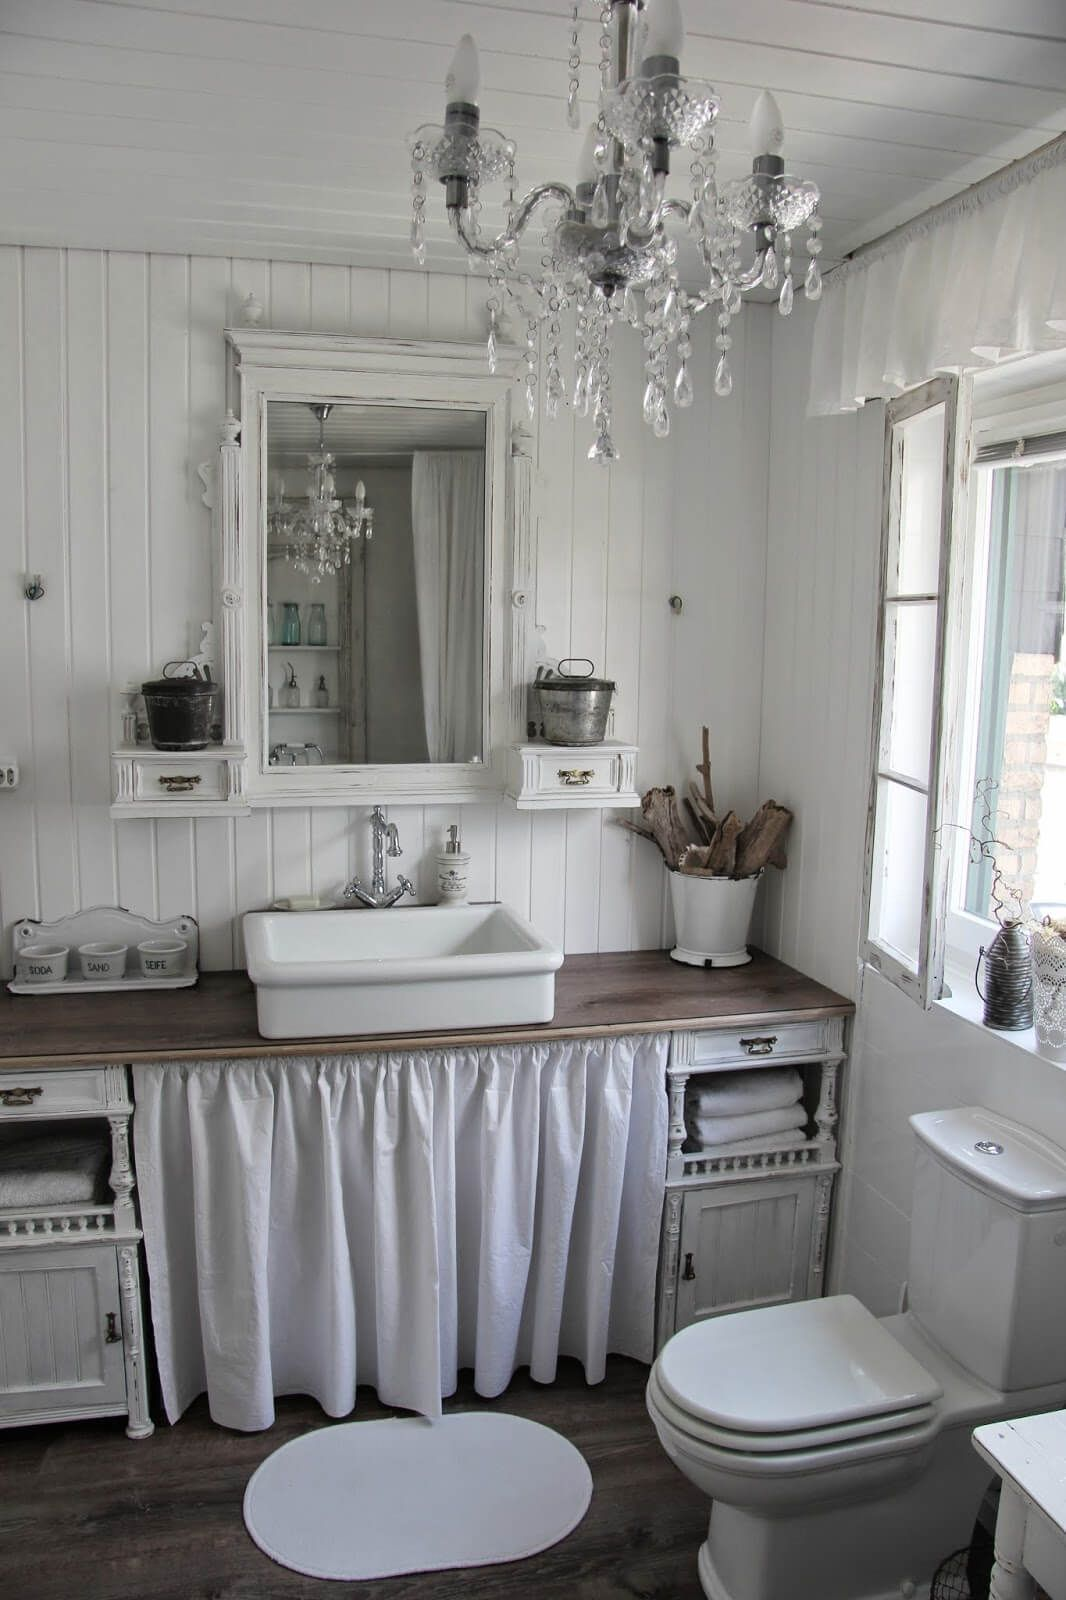 Bon Shabby Chic Bathroom Design With Ruffle Details